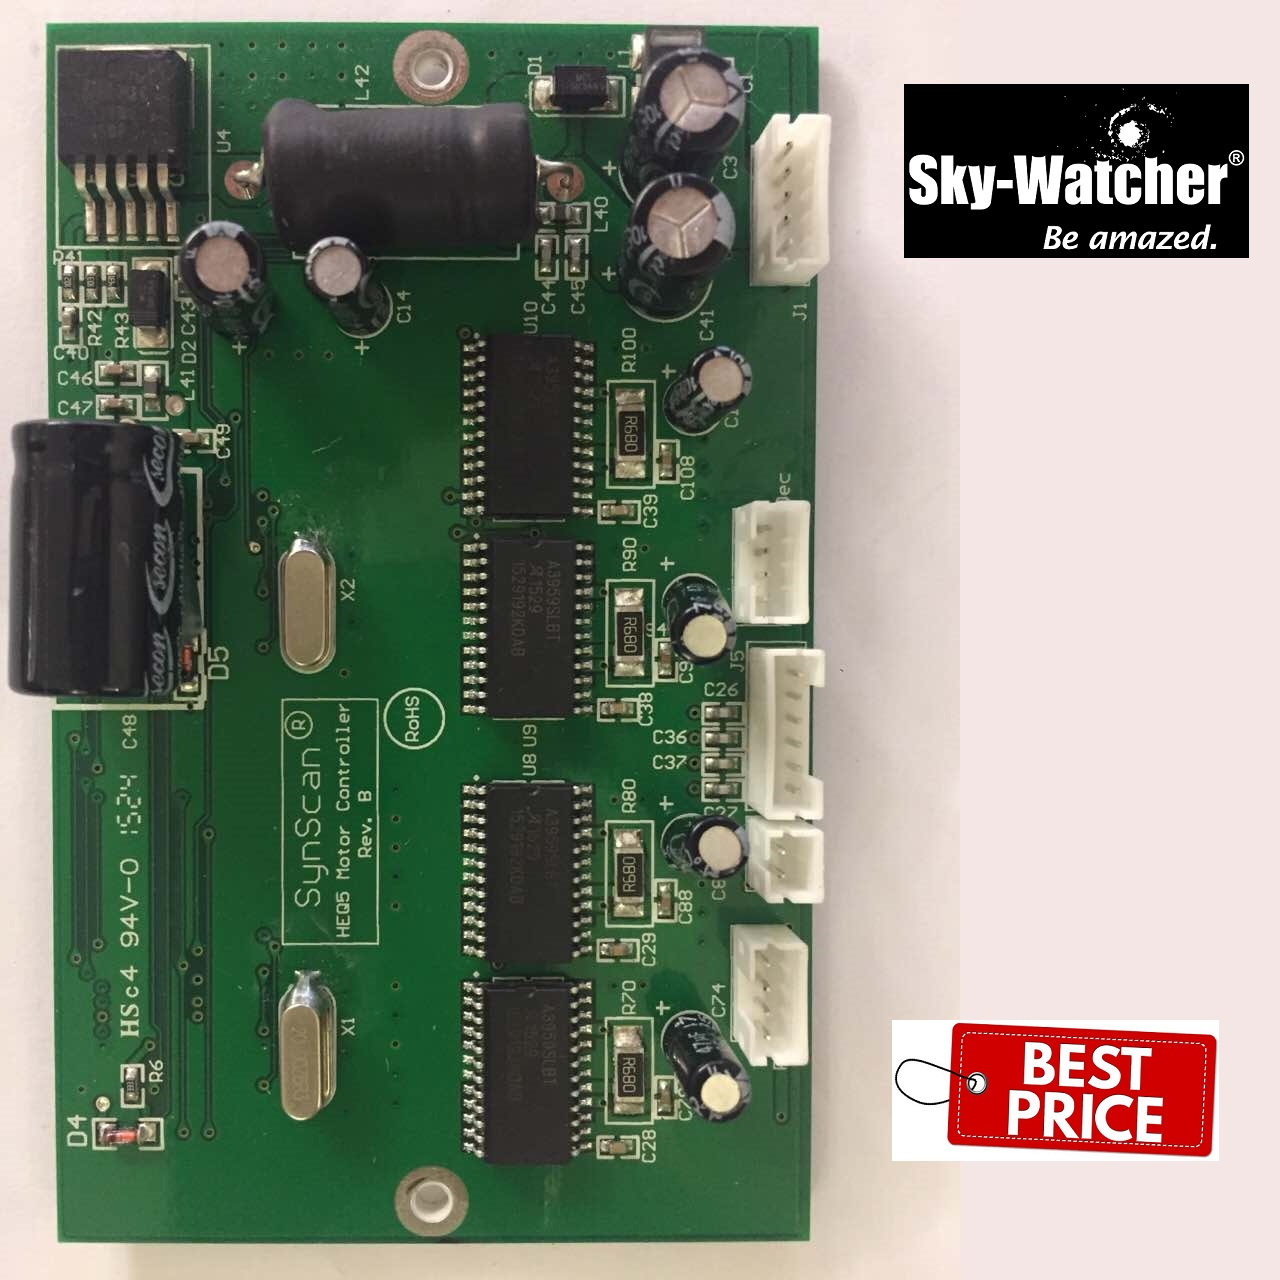 Sky-Watcher Motherboard For HEQ5 PRO